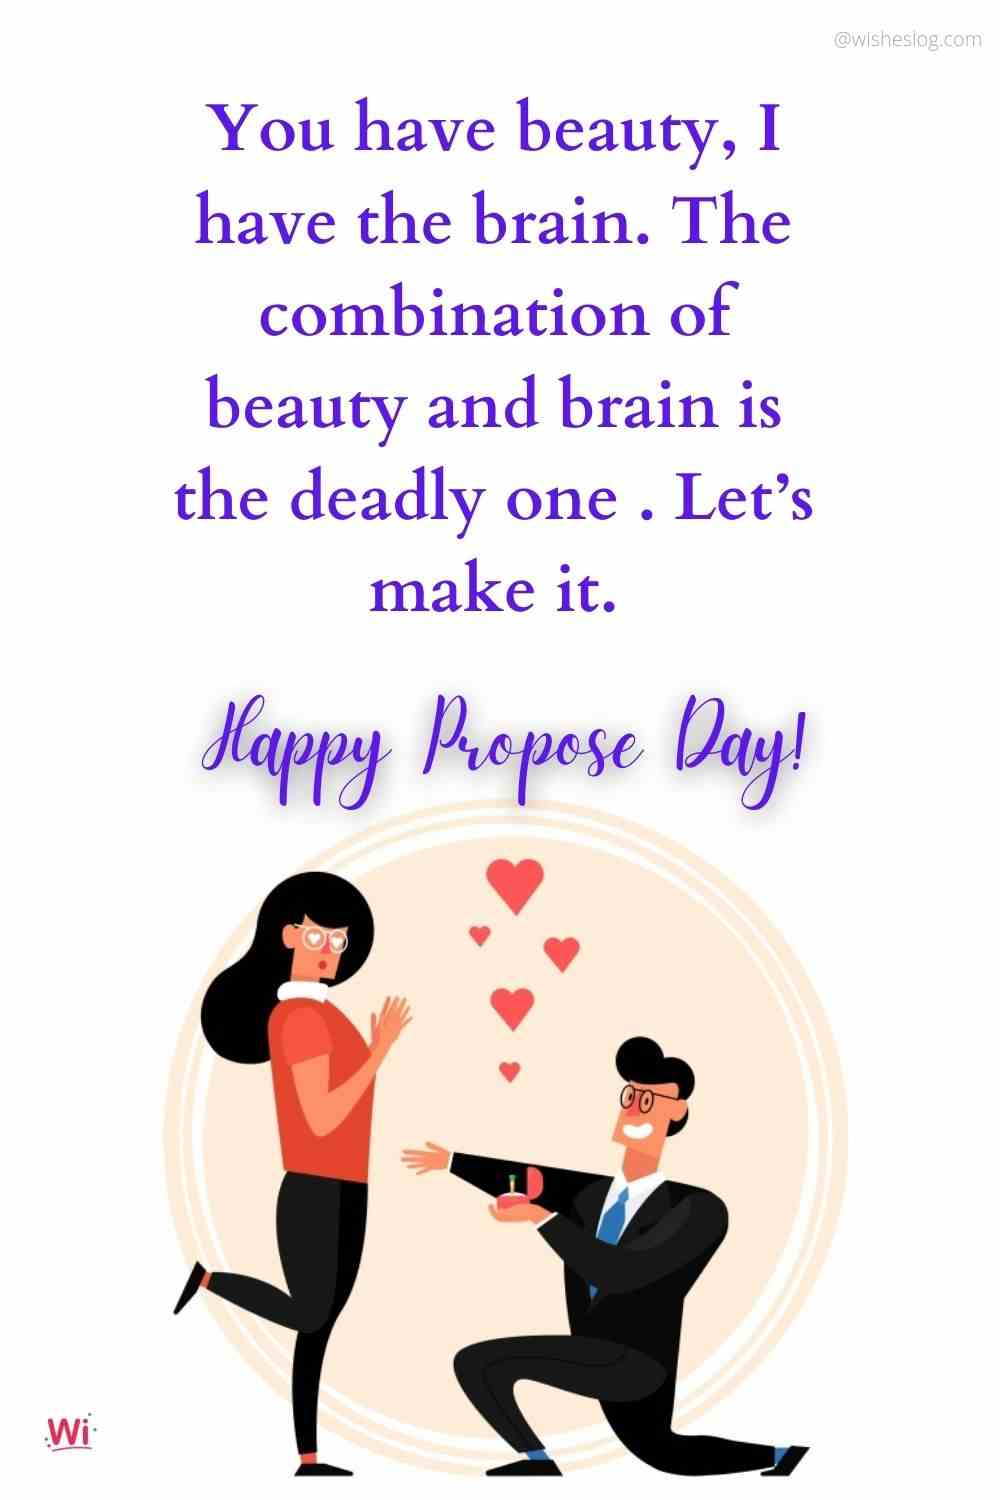 happy propose day msg for gf